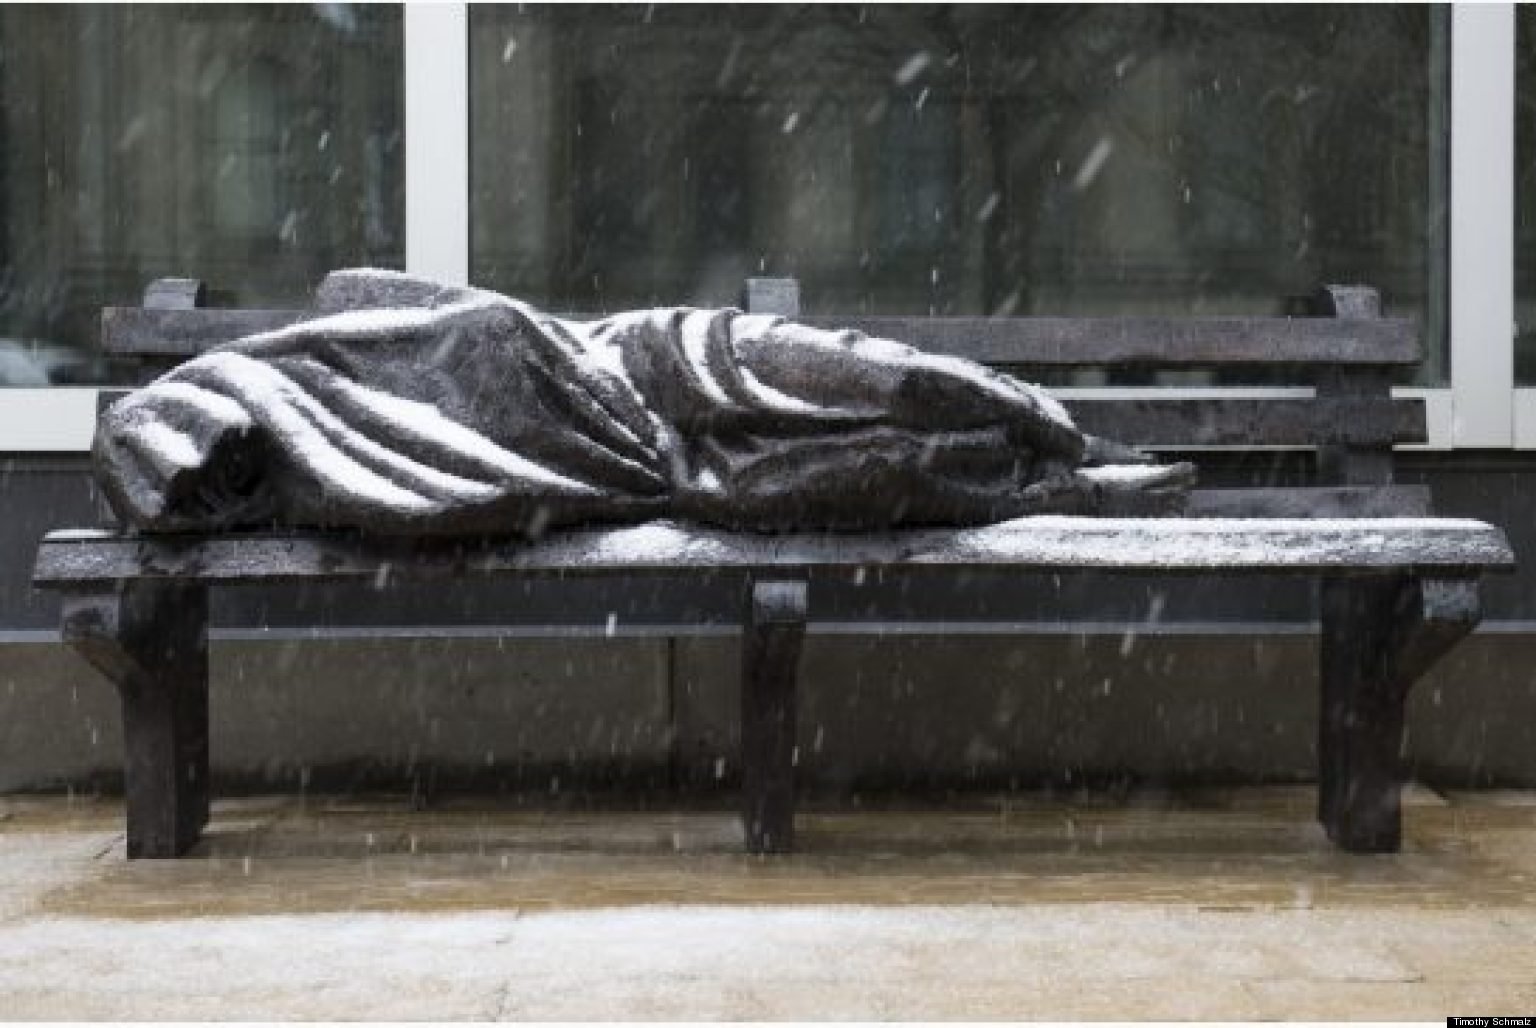 Homeless Jesus Sculpture Continues To Divide Wealthy